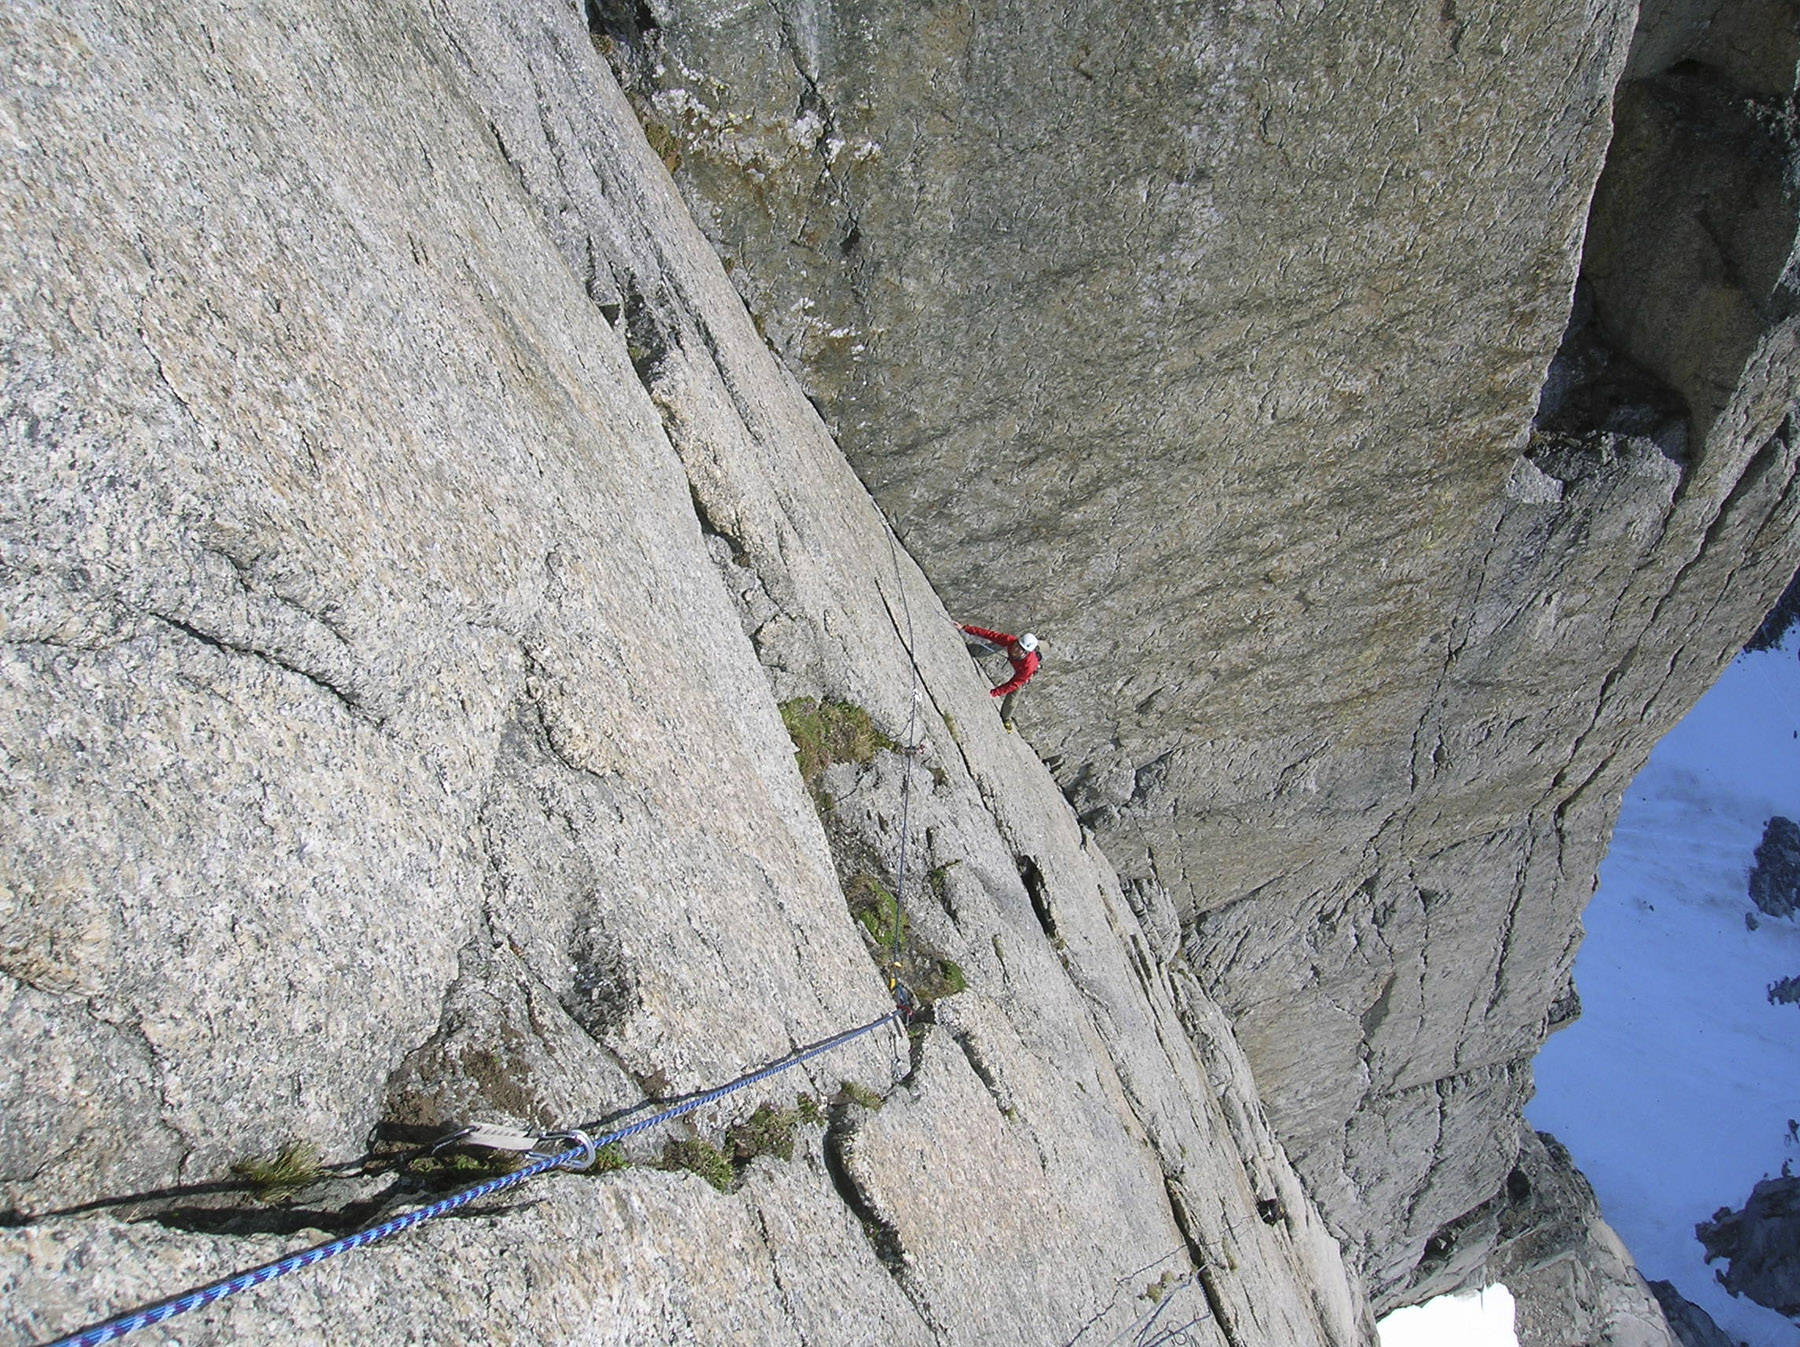 Mattias Sellden in the big diedre on the west face of Hermelnbjerg south summit.